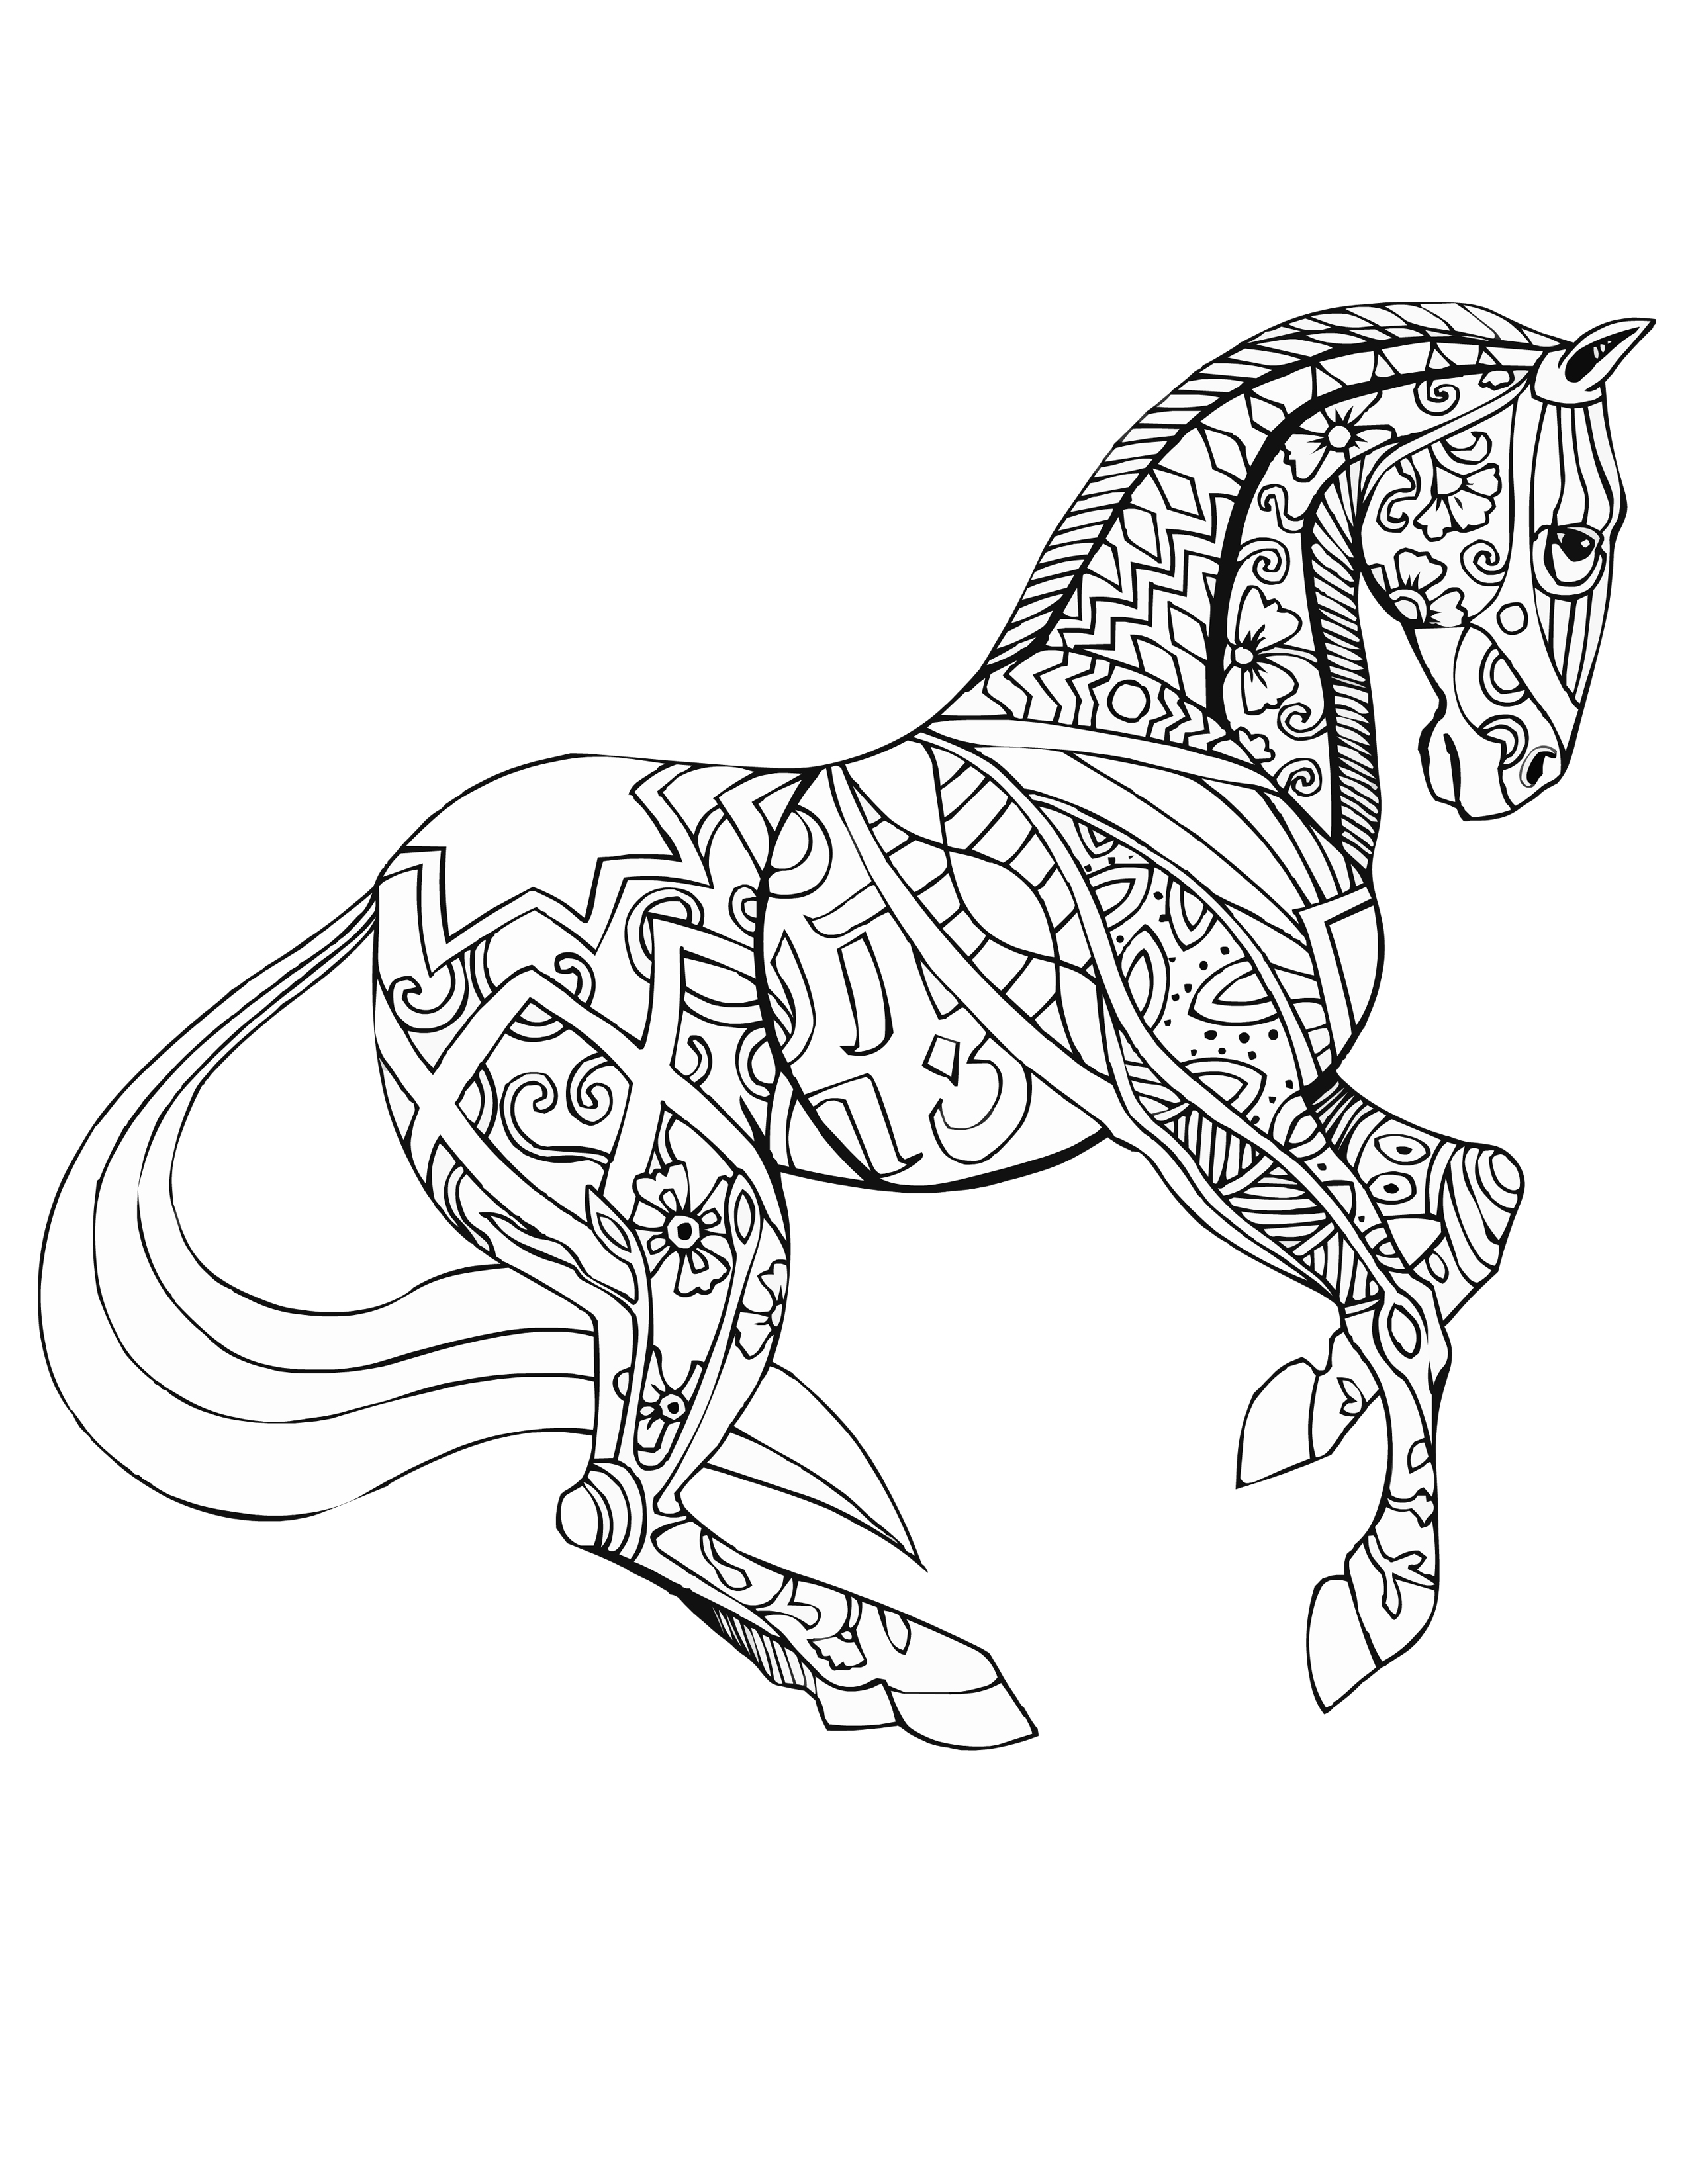 horse pics to color palomino horse coloring pages download and print for free color pics to horse